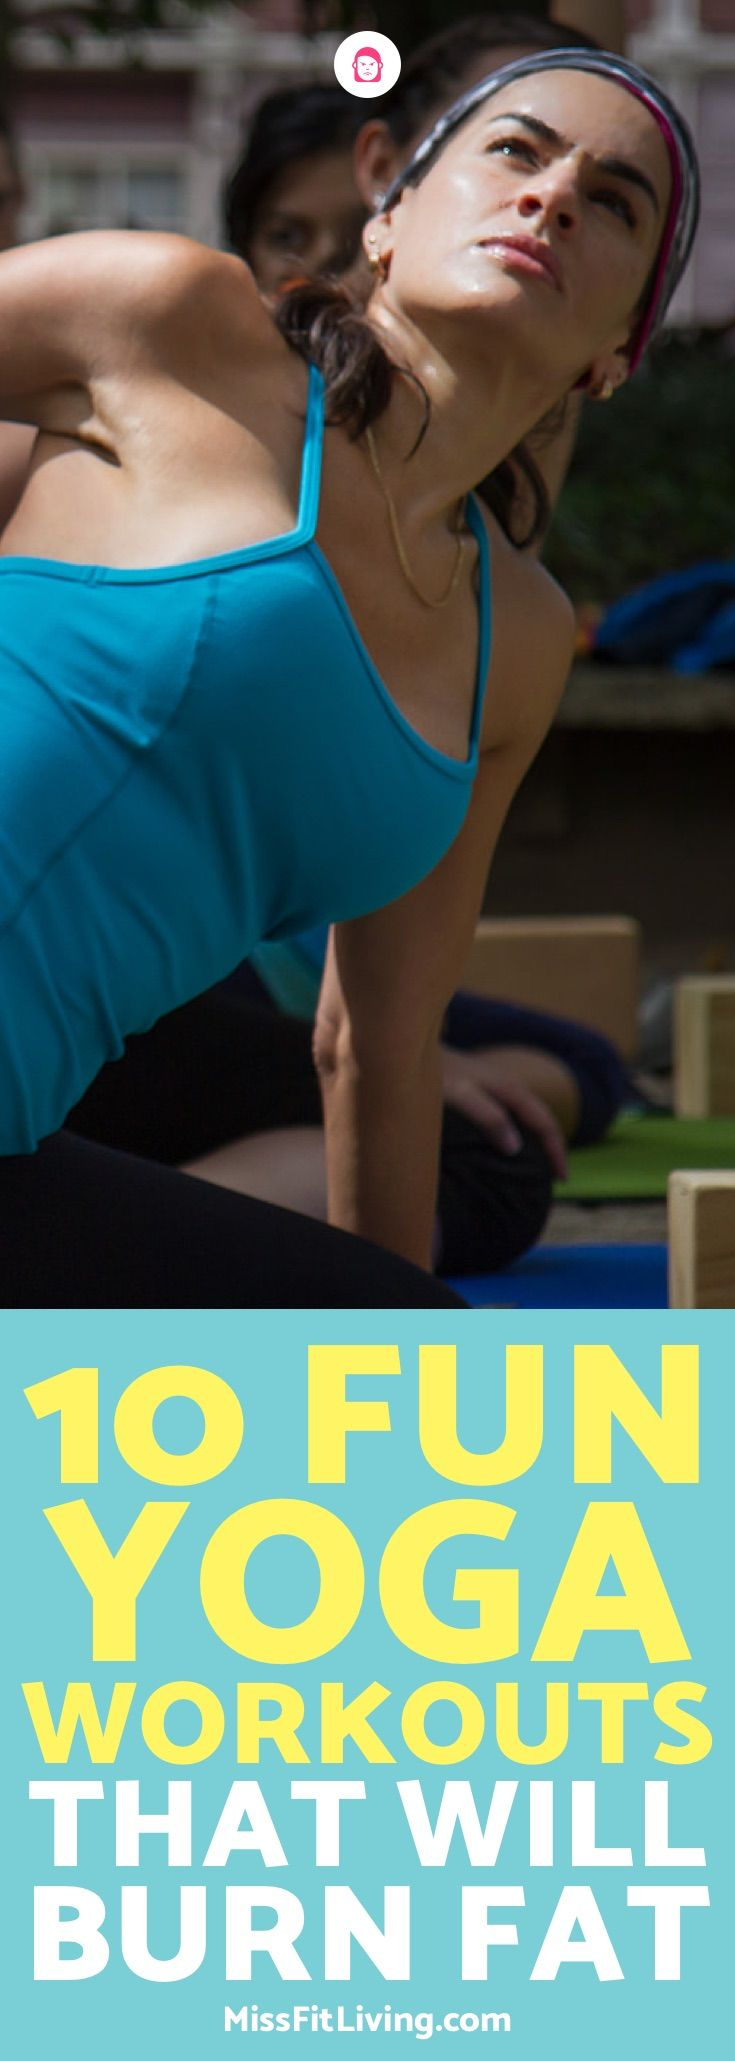 Losing fat can be a slow and boring process but it gets easier if you can incorp...